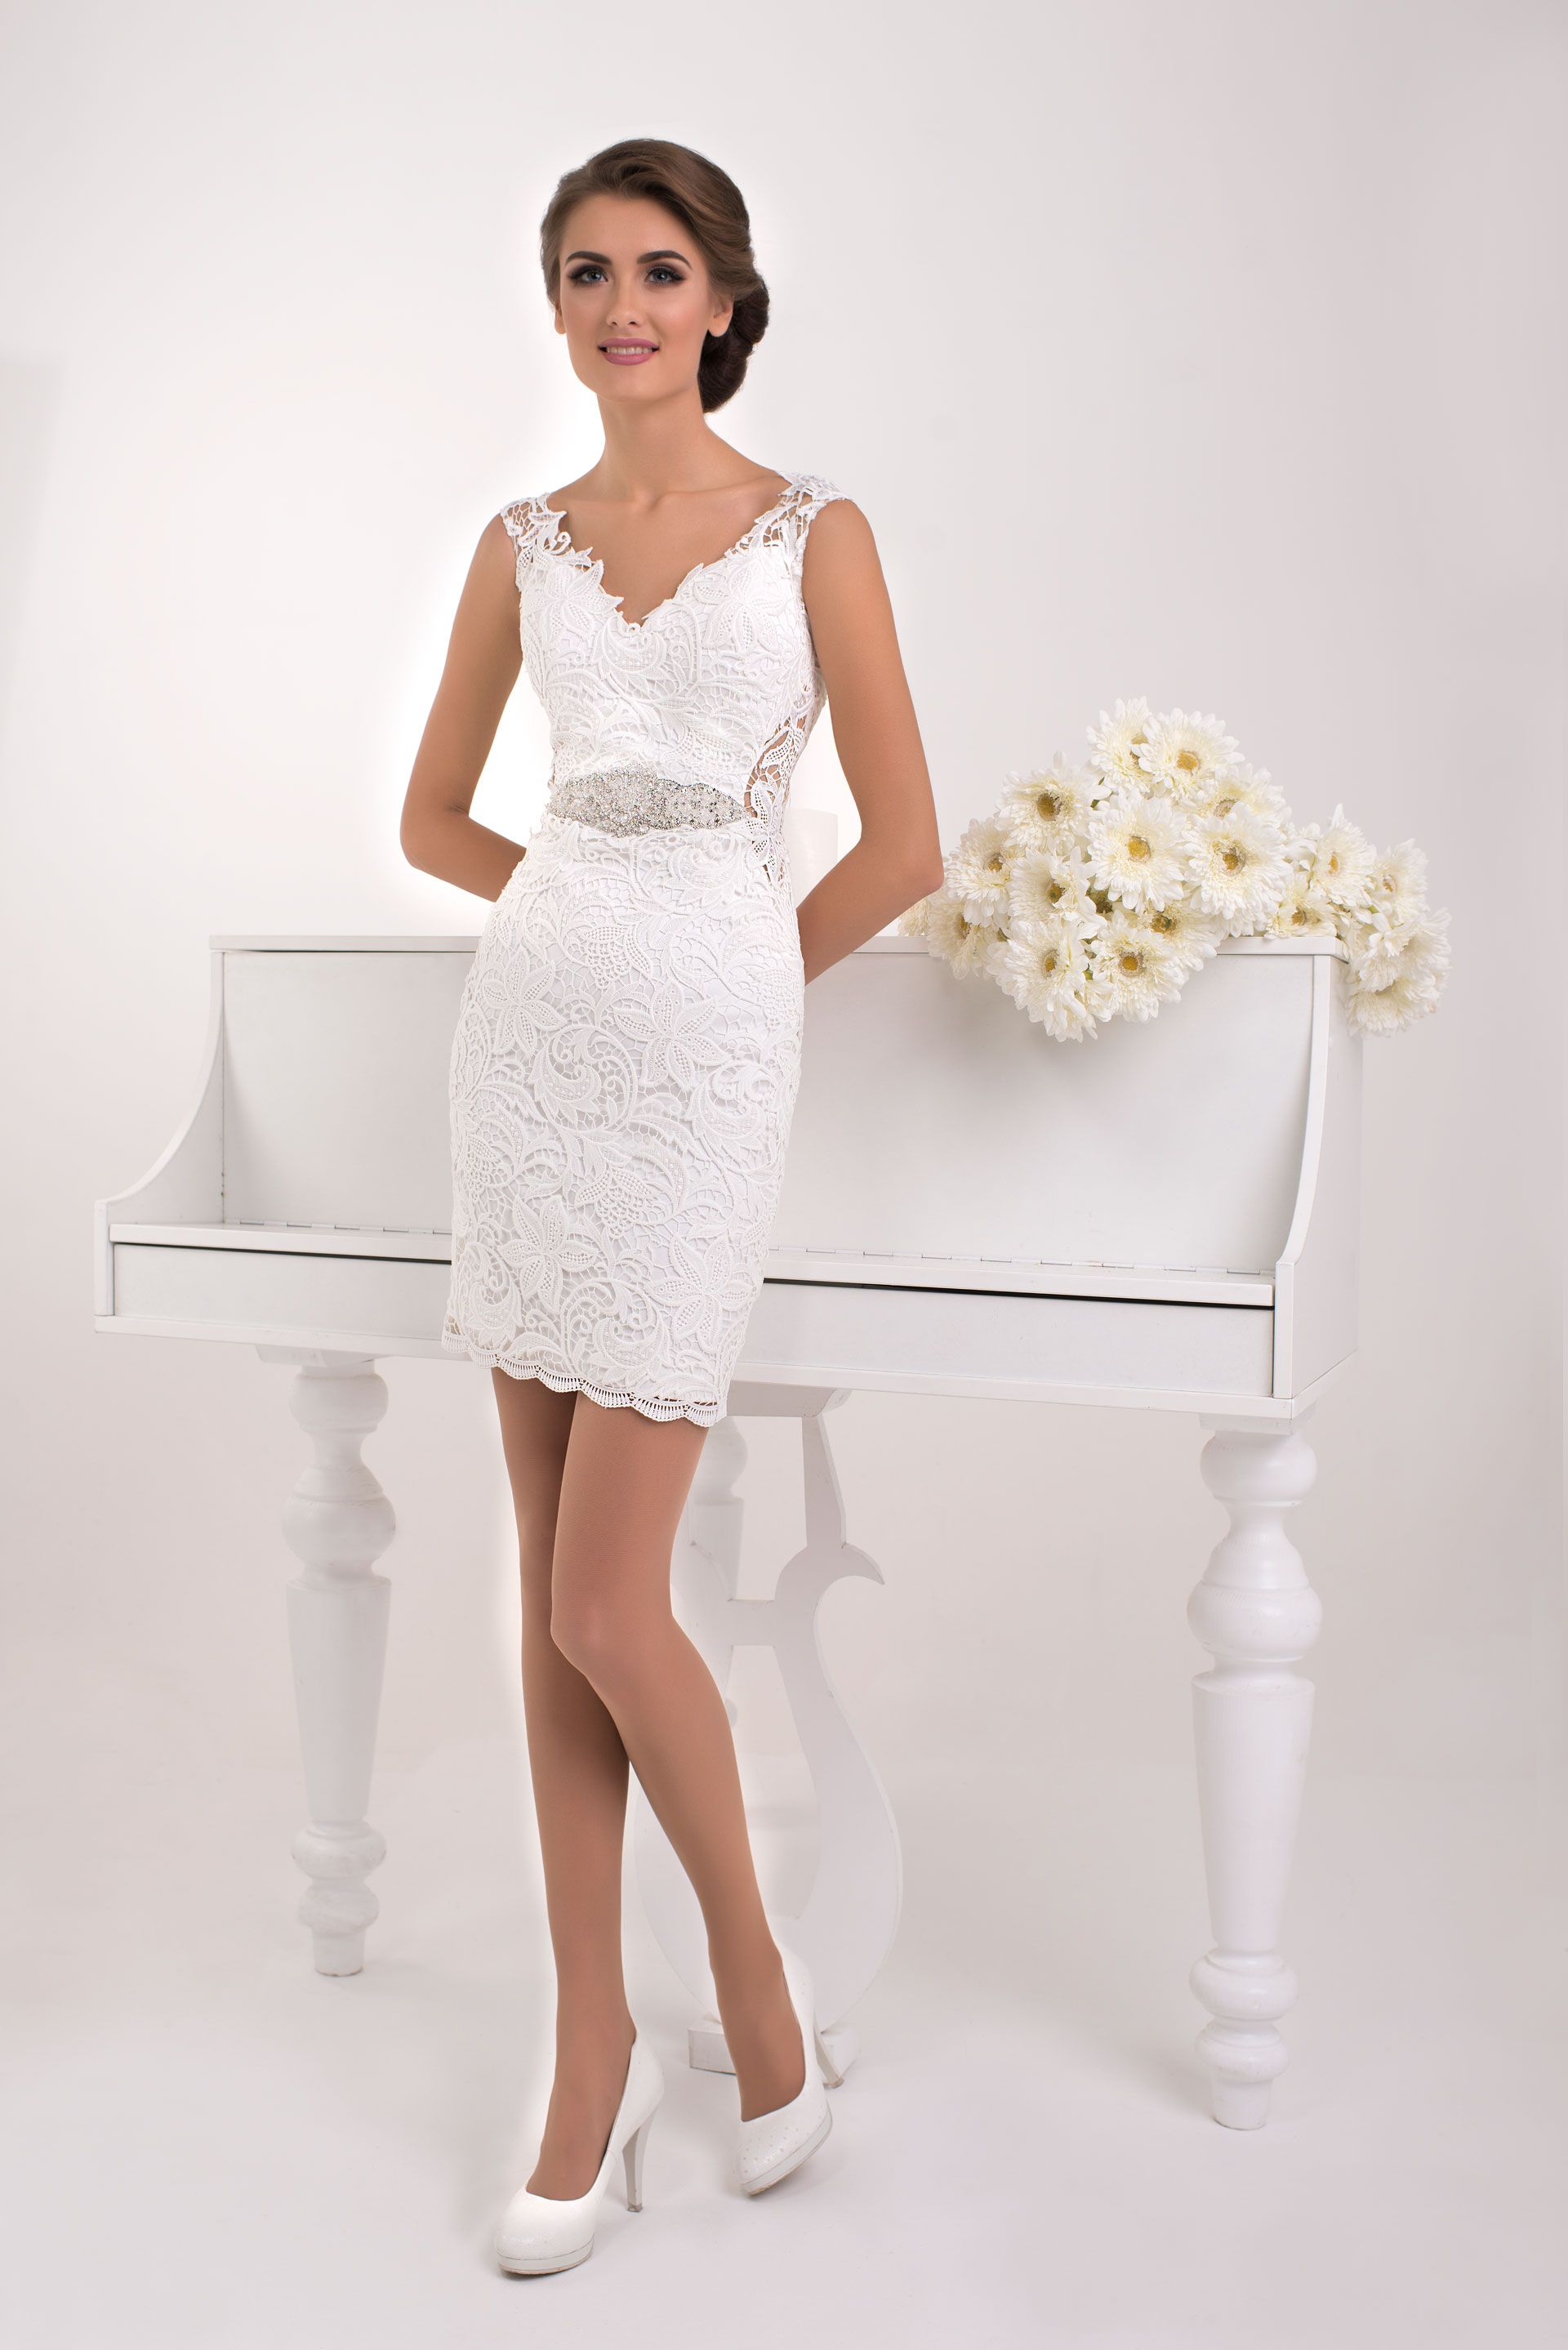 Crochet Lace Wedding Dress with Crystals